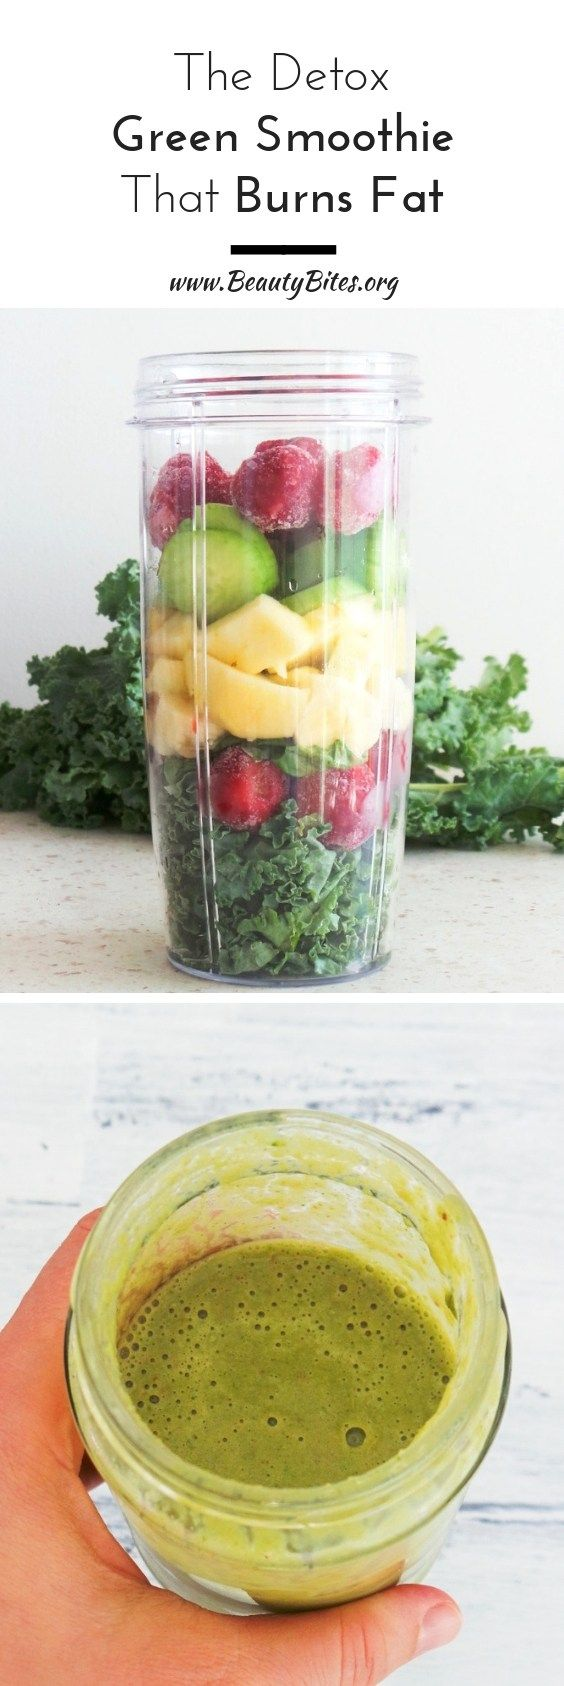 Kale Smoothie With Banana And Strawberries